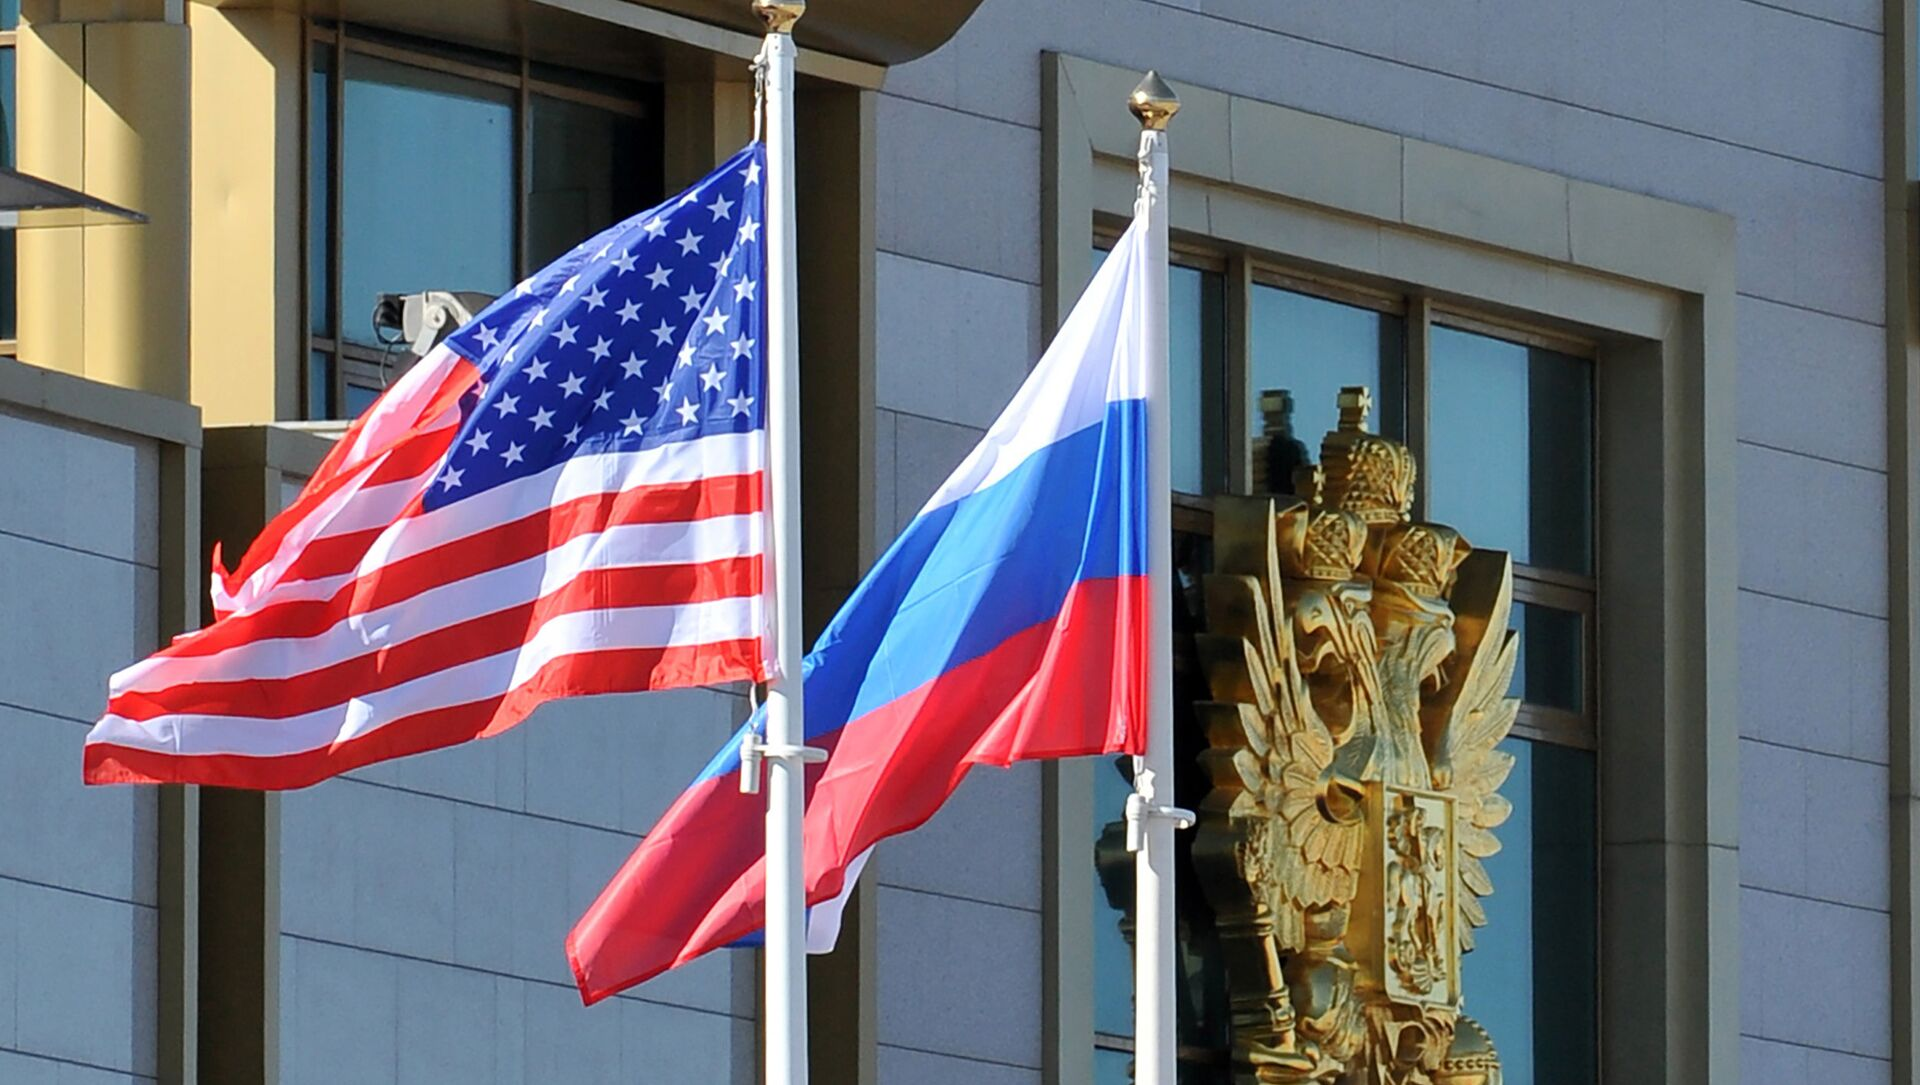 This photo taken on May 7, 2013 shows Russian and the US flags running up as the US Secretary of State arrives at Moscow Vnukovo Airport - Sputnik International, 1920, 15.06.2021